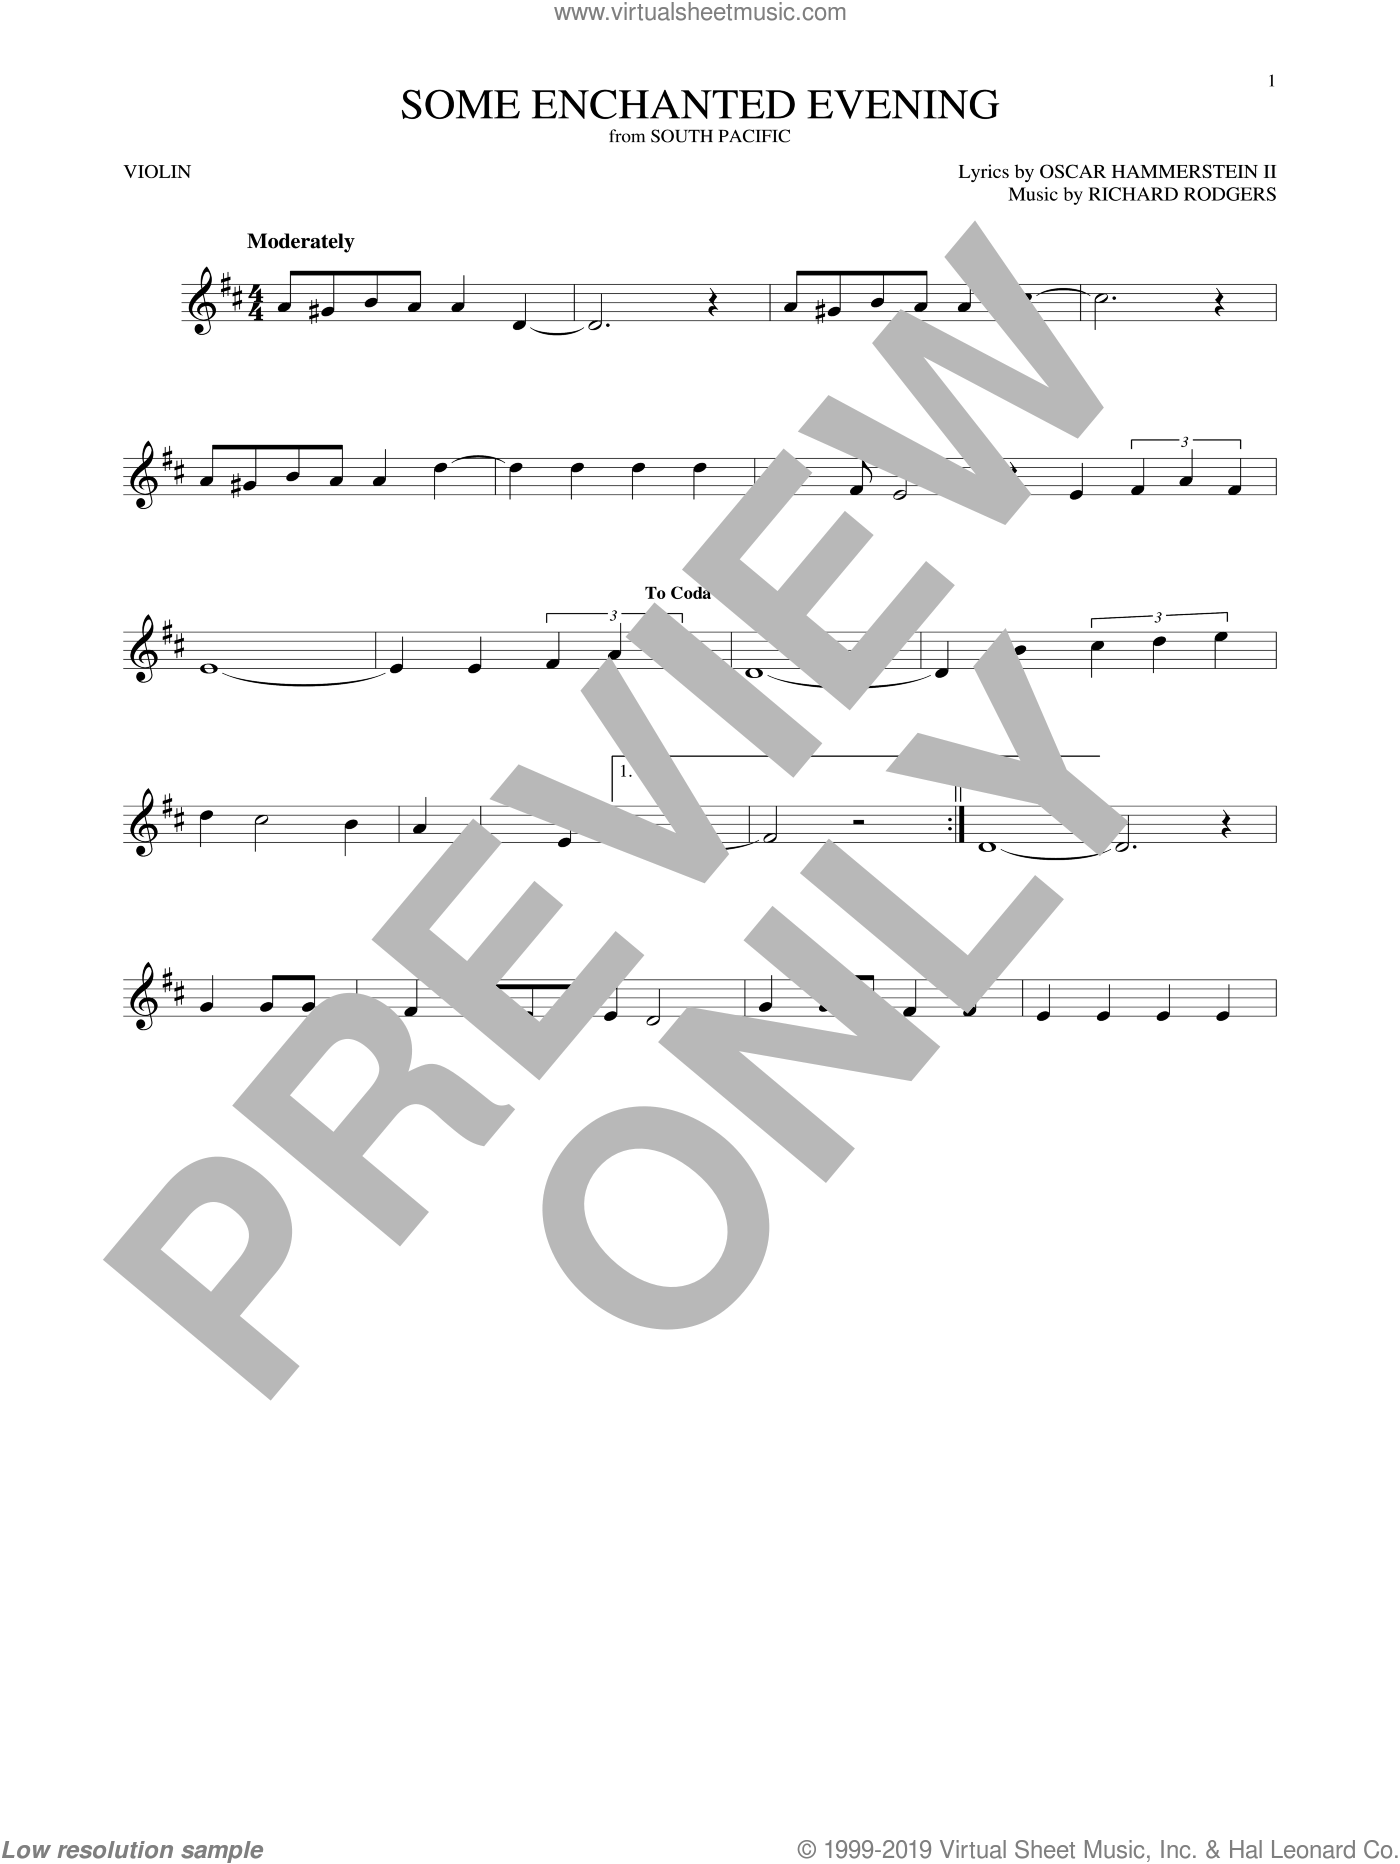 Some Enchanted Evening sheet music for violin solo by Rodgers & Hammerstein, Oscar II Hammerstein and Richard Rodgers, intermediate skill level